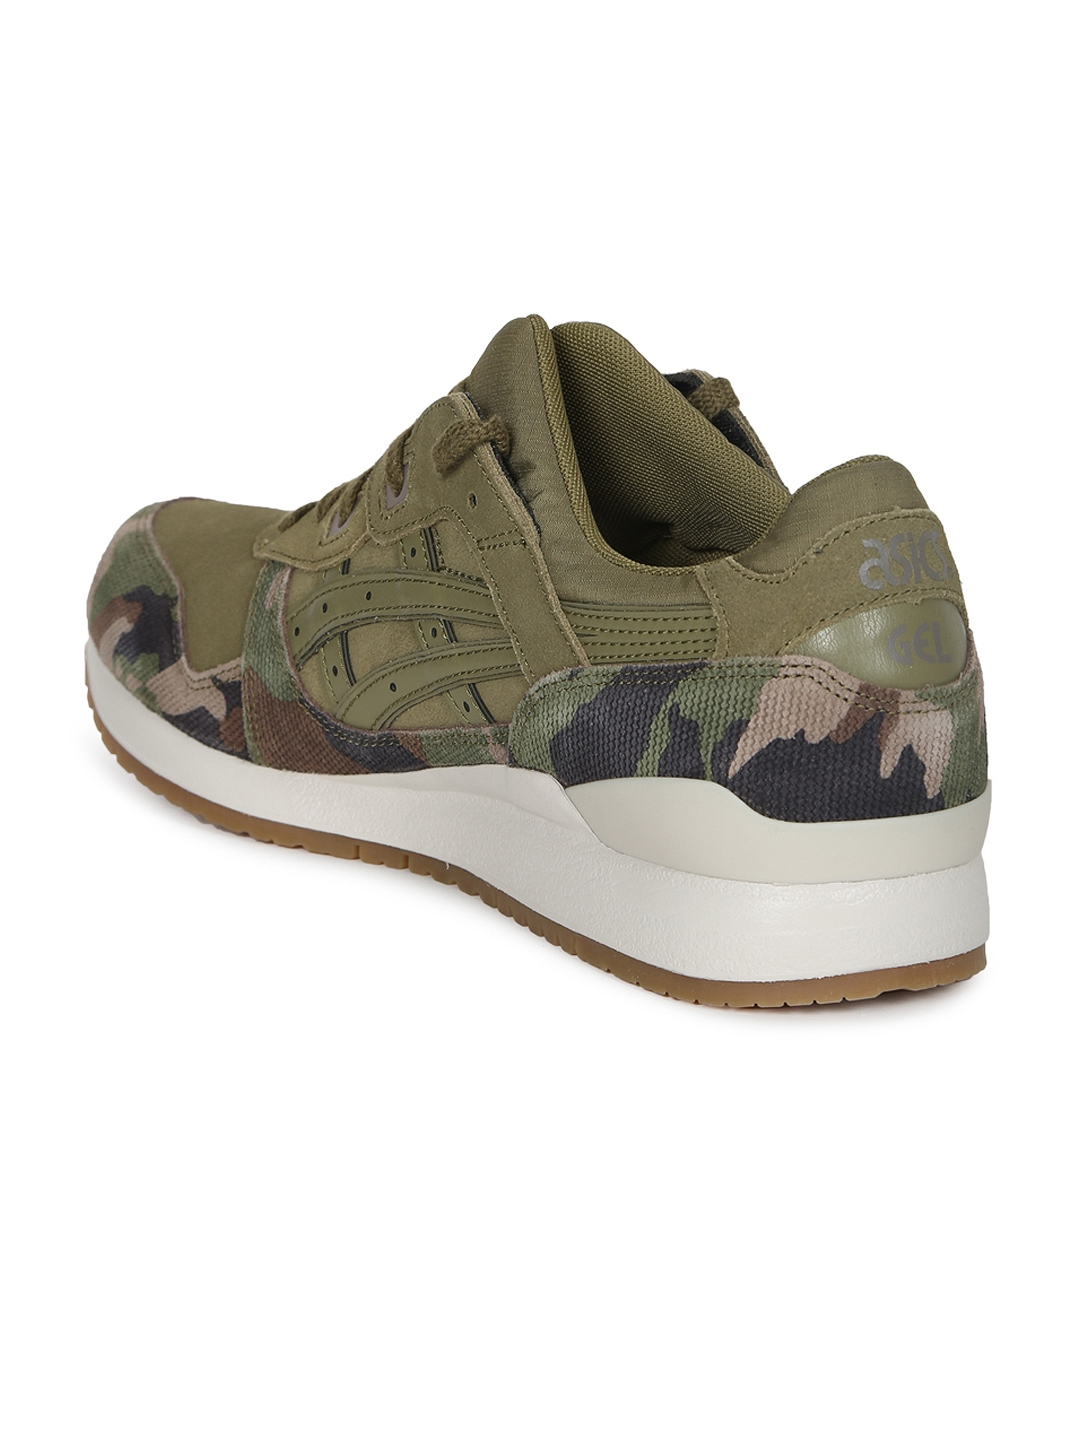 Gel Green Casual Lyte Asics Olive Tiger Buy Unisex Iii Sneakers XqxwRFOn